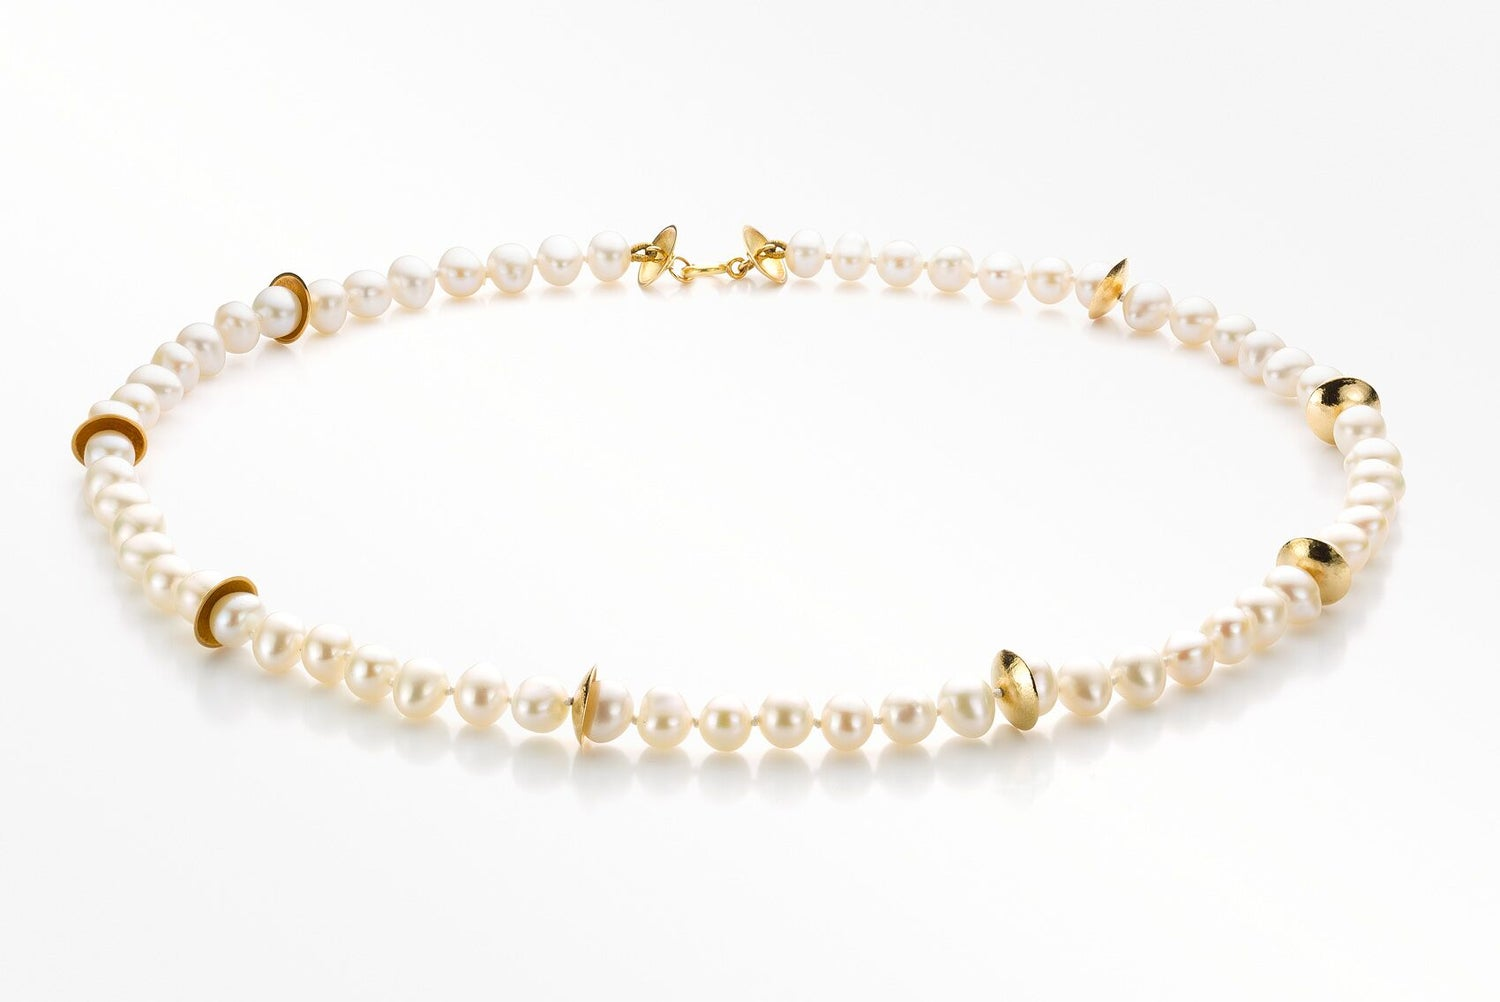 Image of 'Pearl' necklace gold white pearls - parelcollier goud